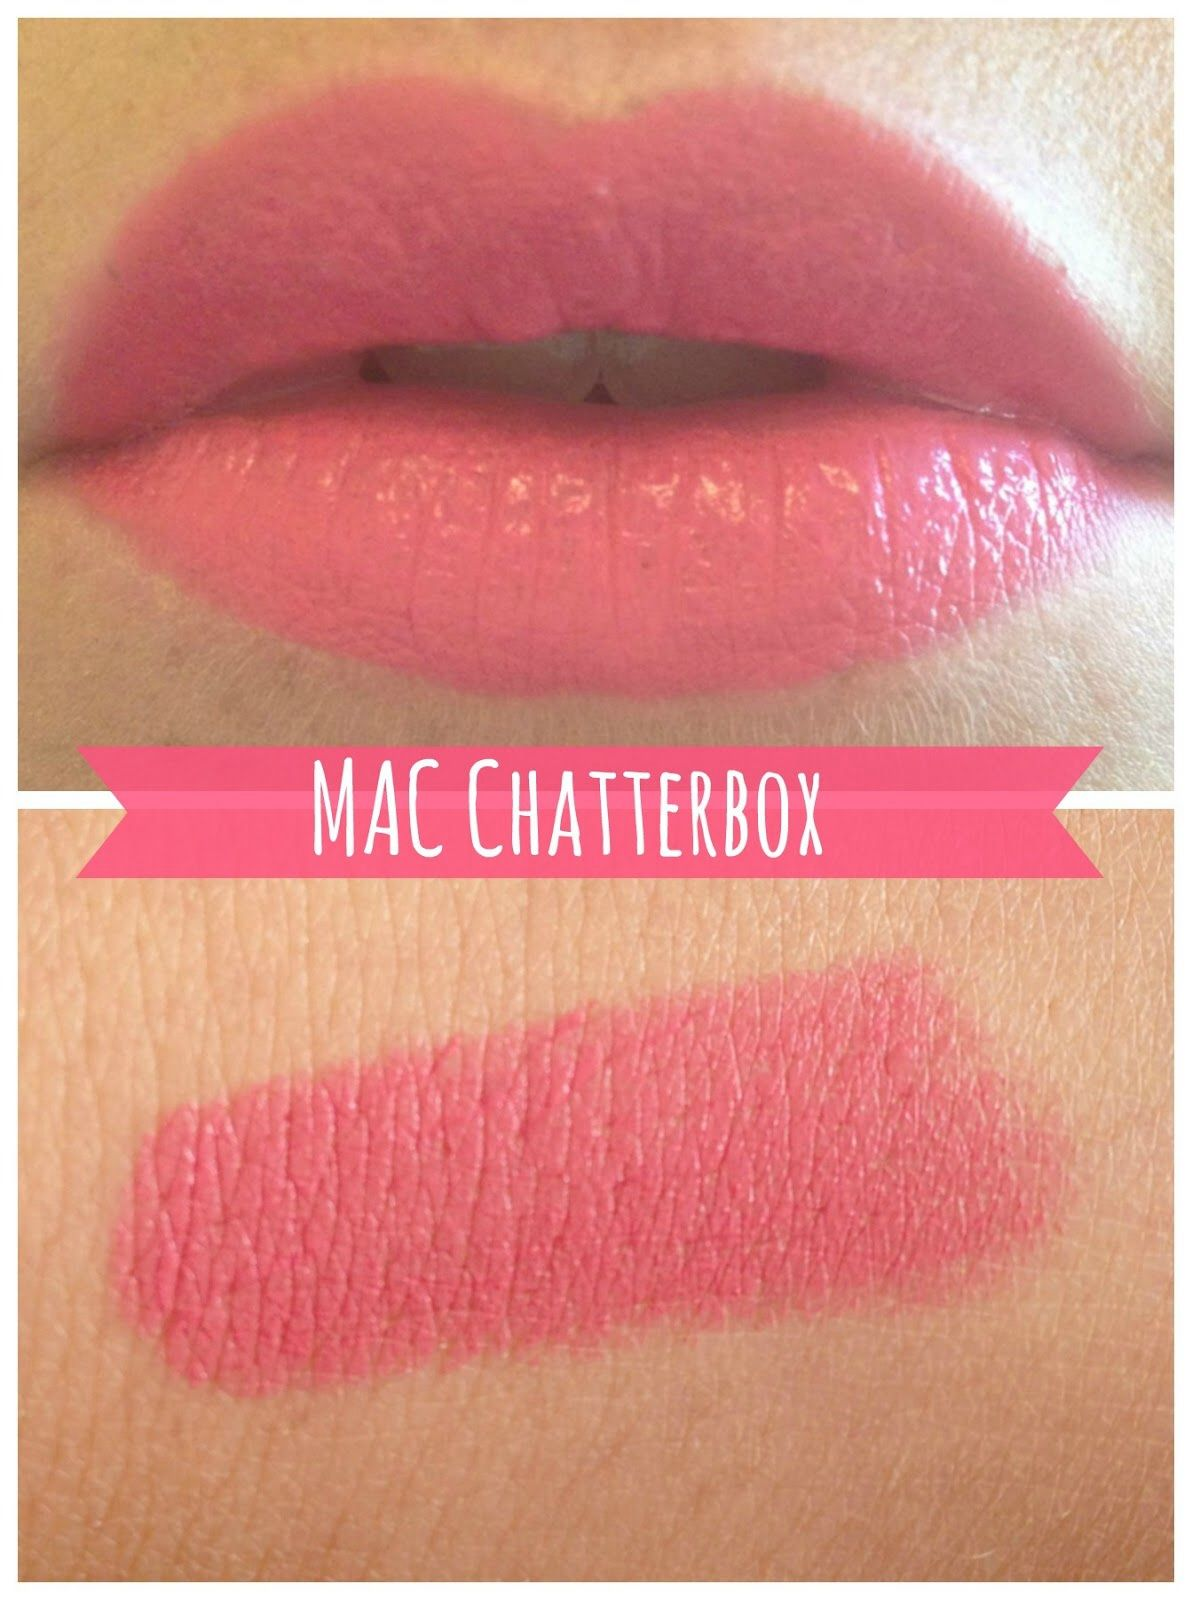 mac chatterbox lipstick beauty makeup kosmetik. Black Bedroom Furniture Sets. Home Design Ideas